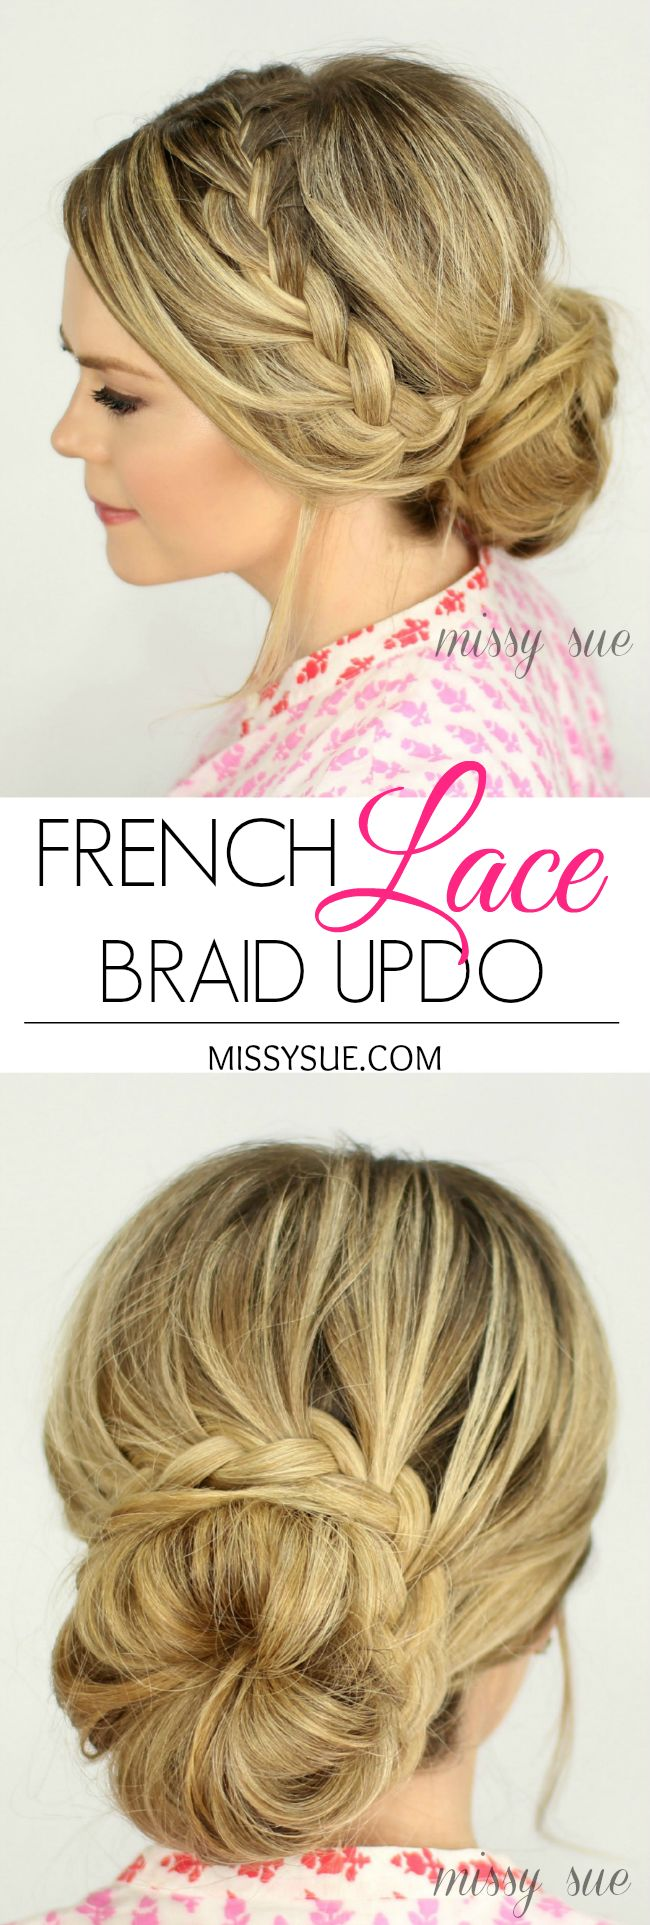 French Braid Updo Hairstyles 17 Best Images About Missy Sue Hair On Pinterest Fall Hairstyles